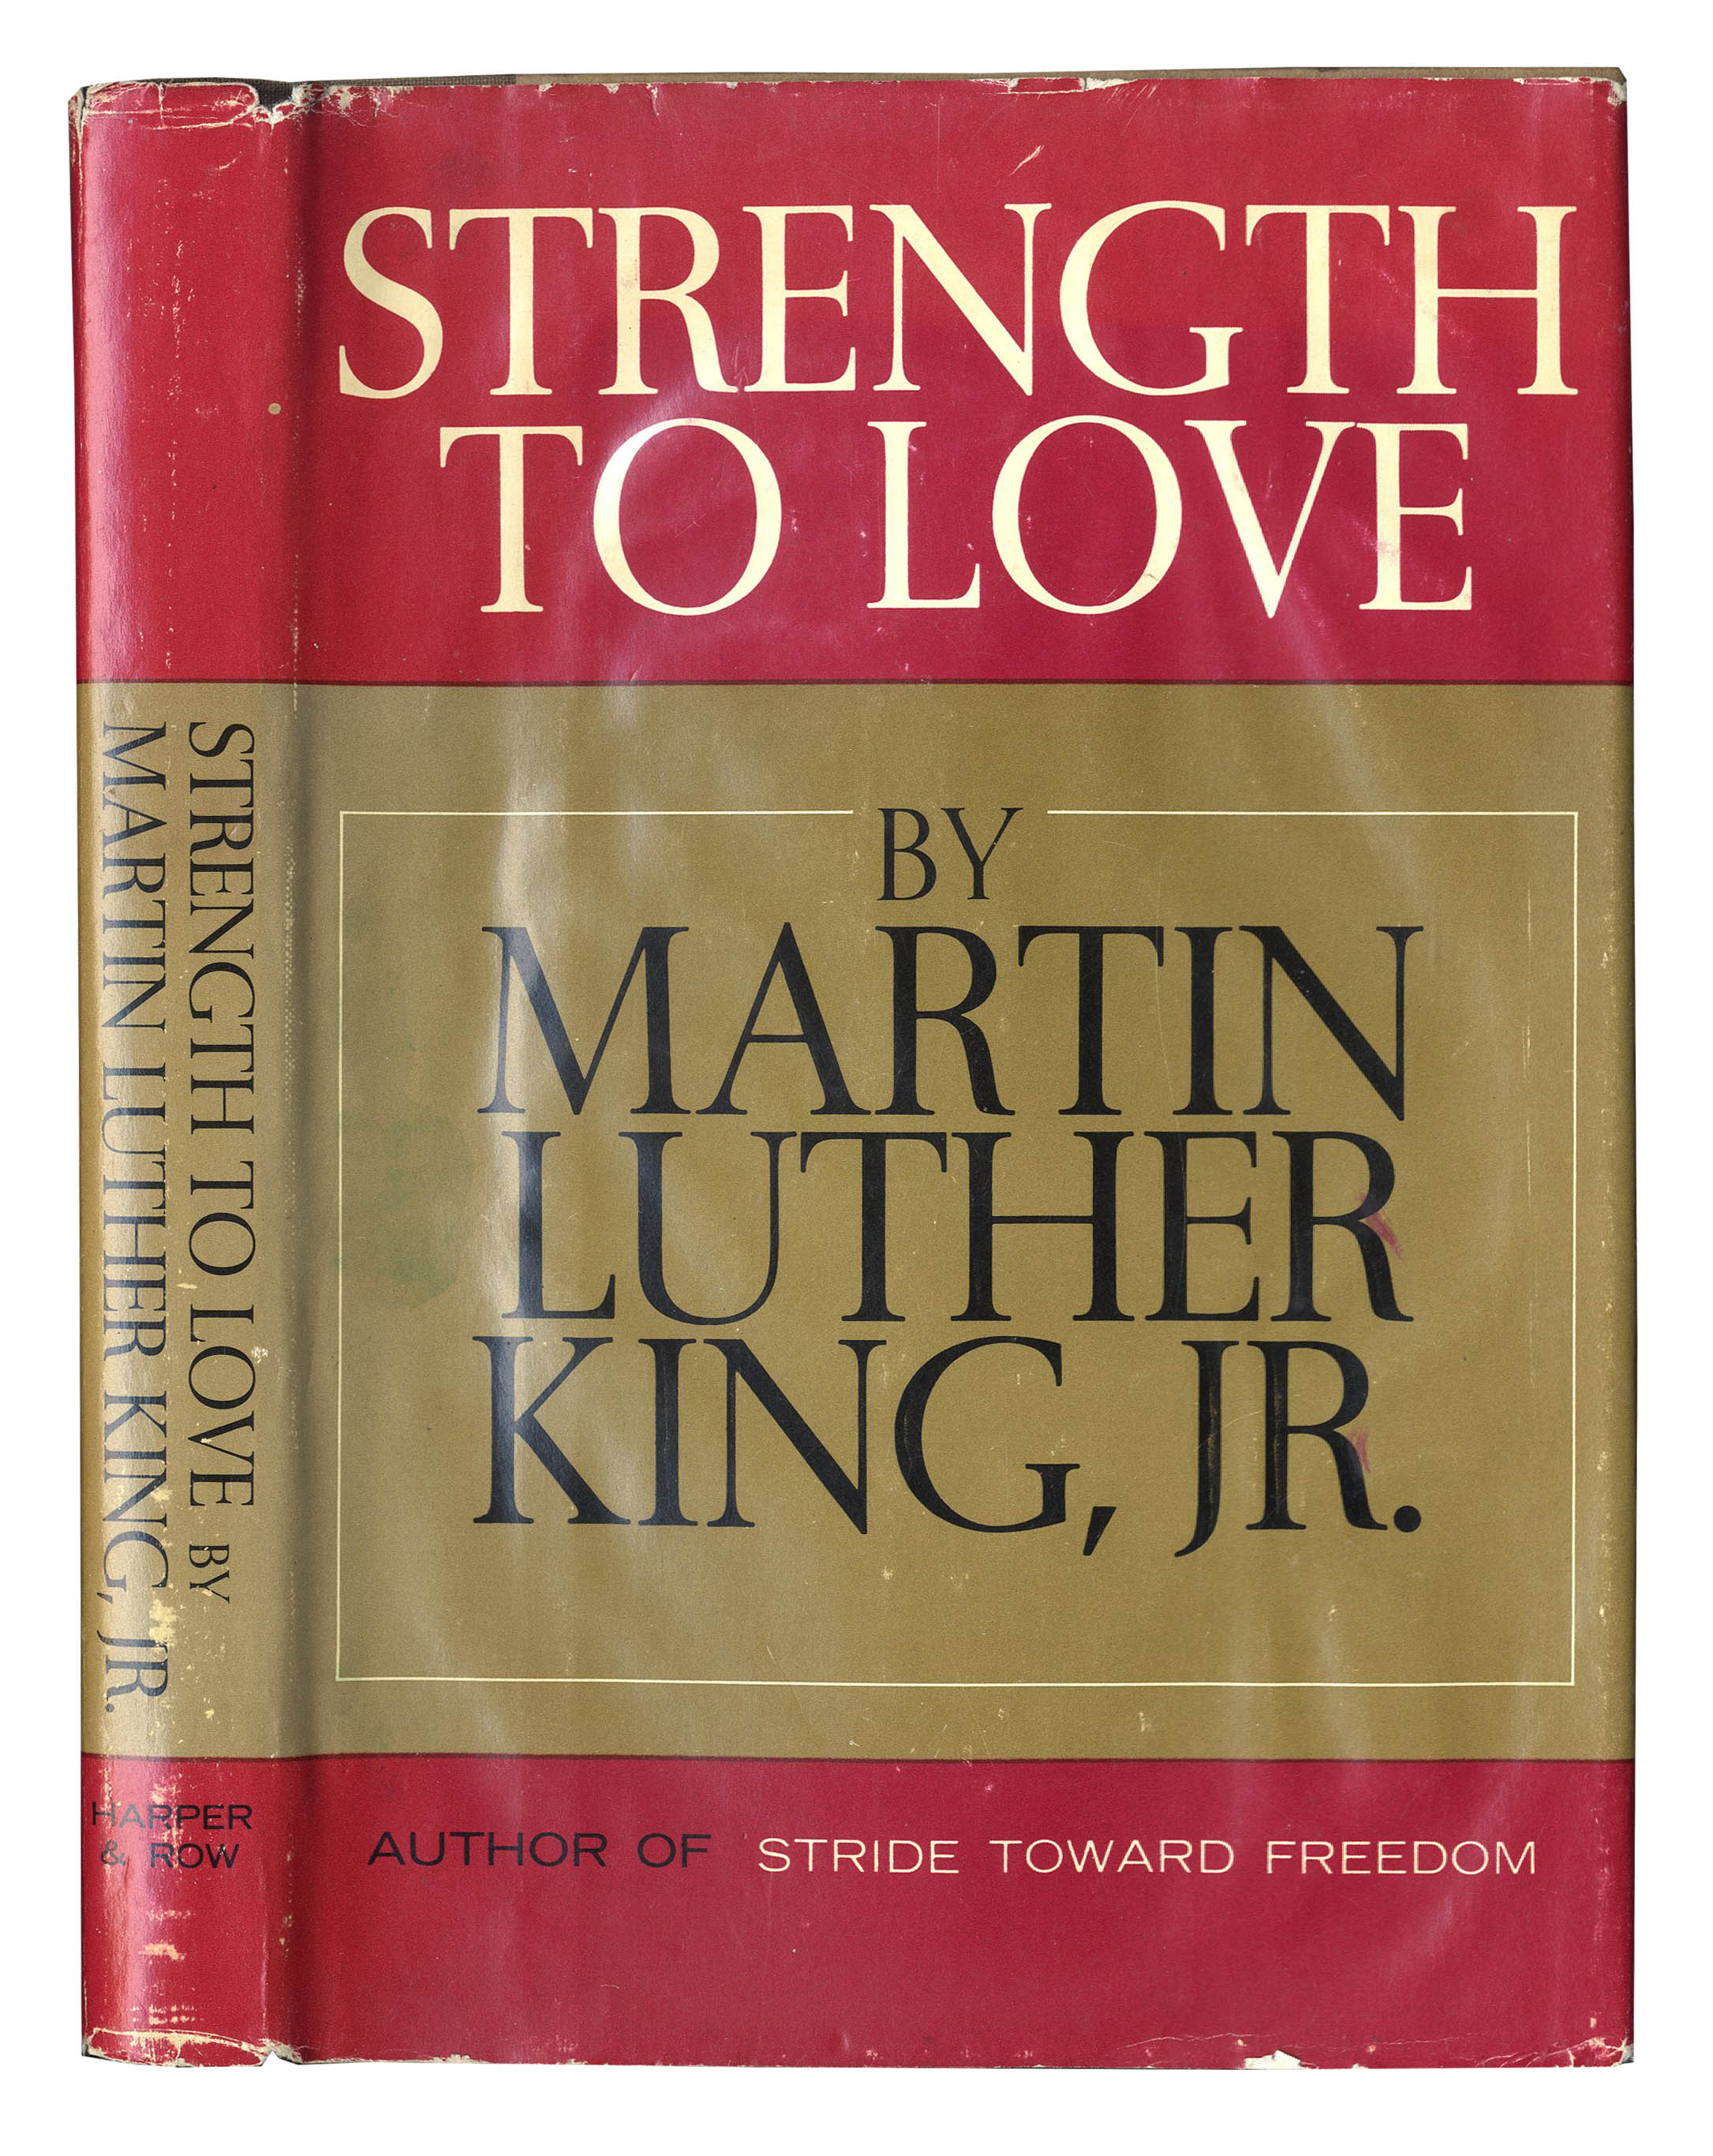 An analysis of the strength to love by martin luther king jr